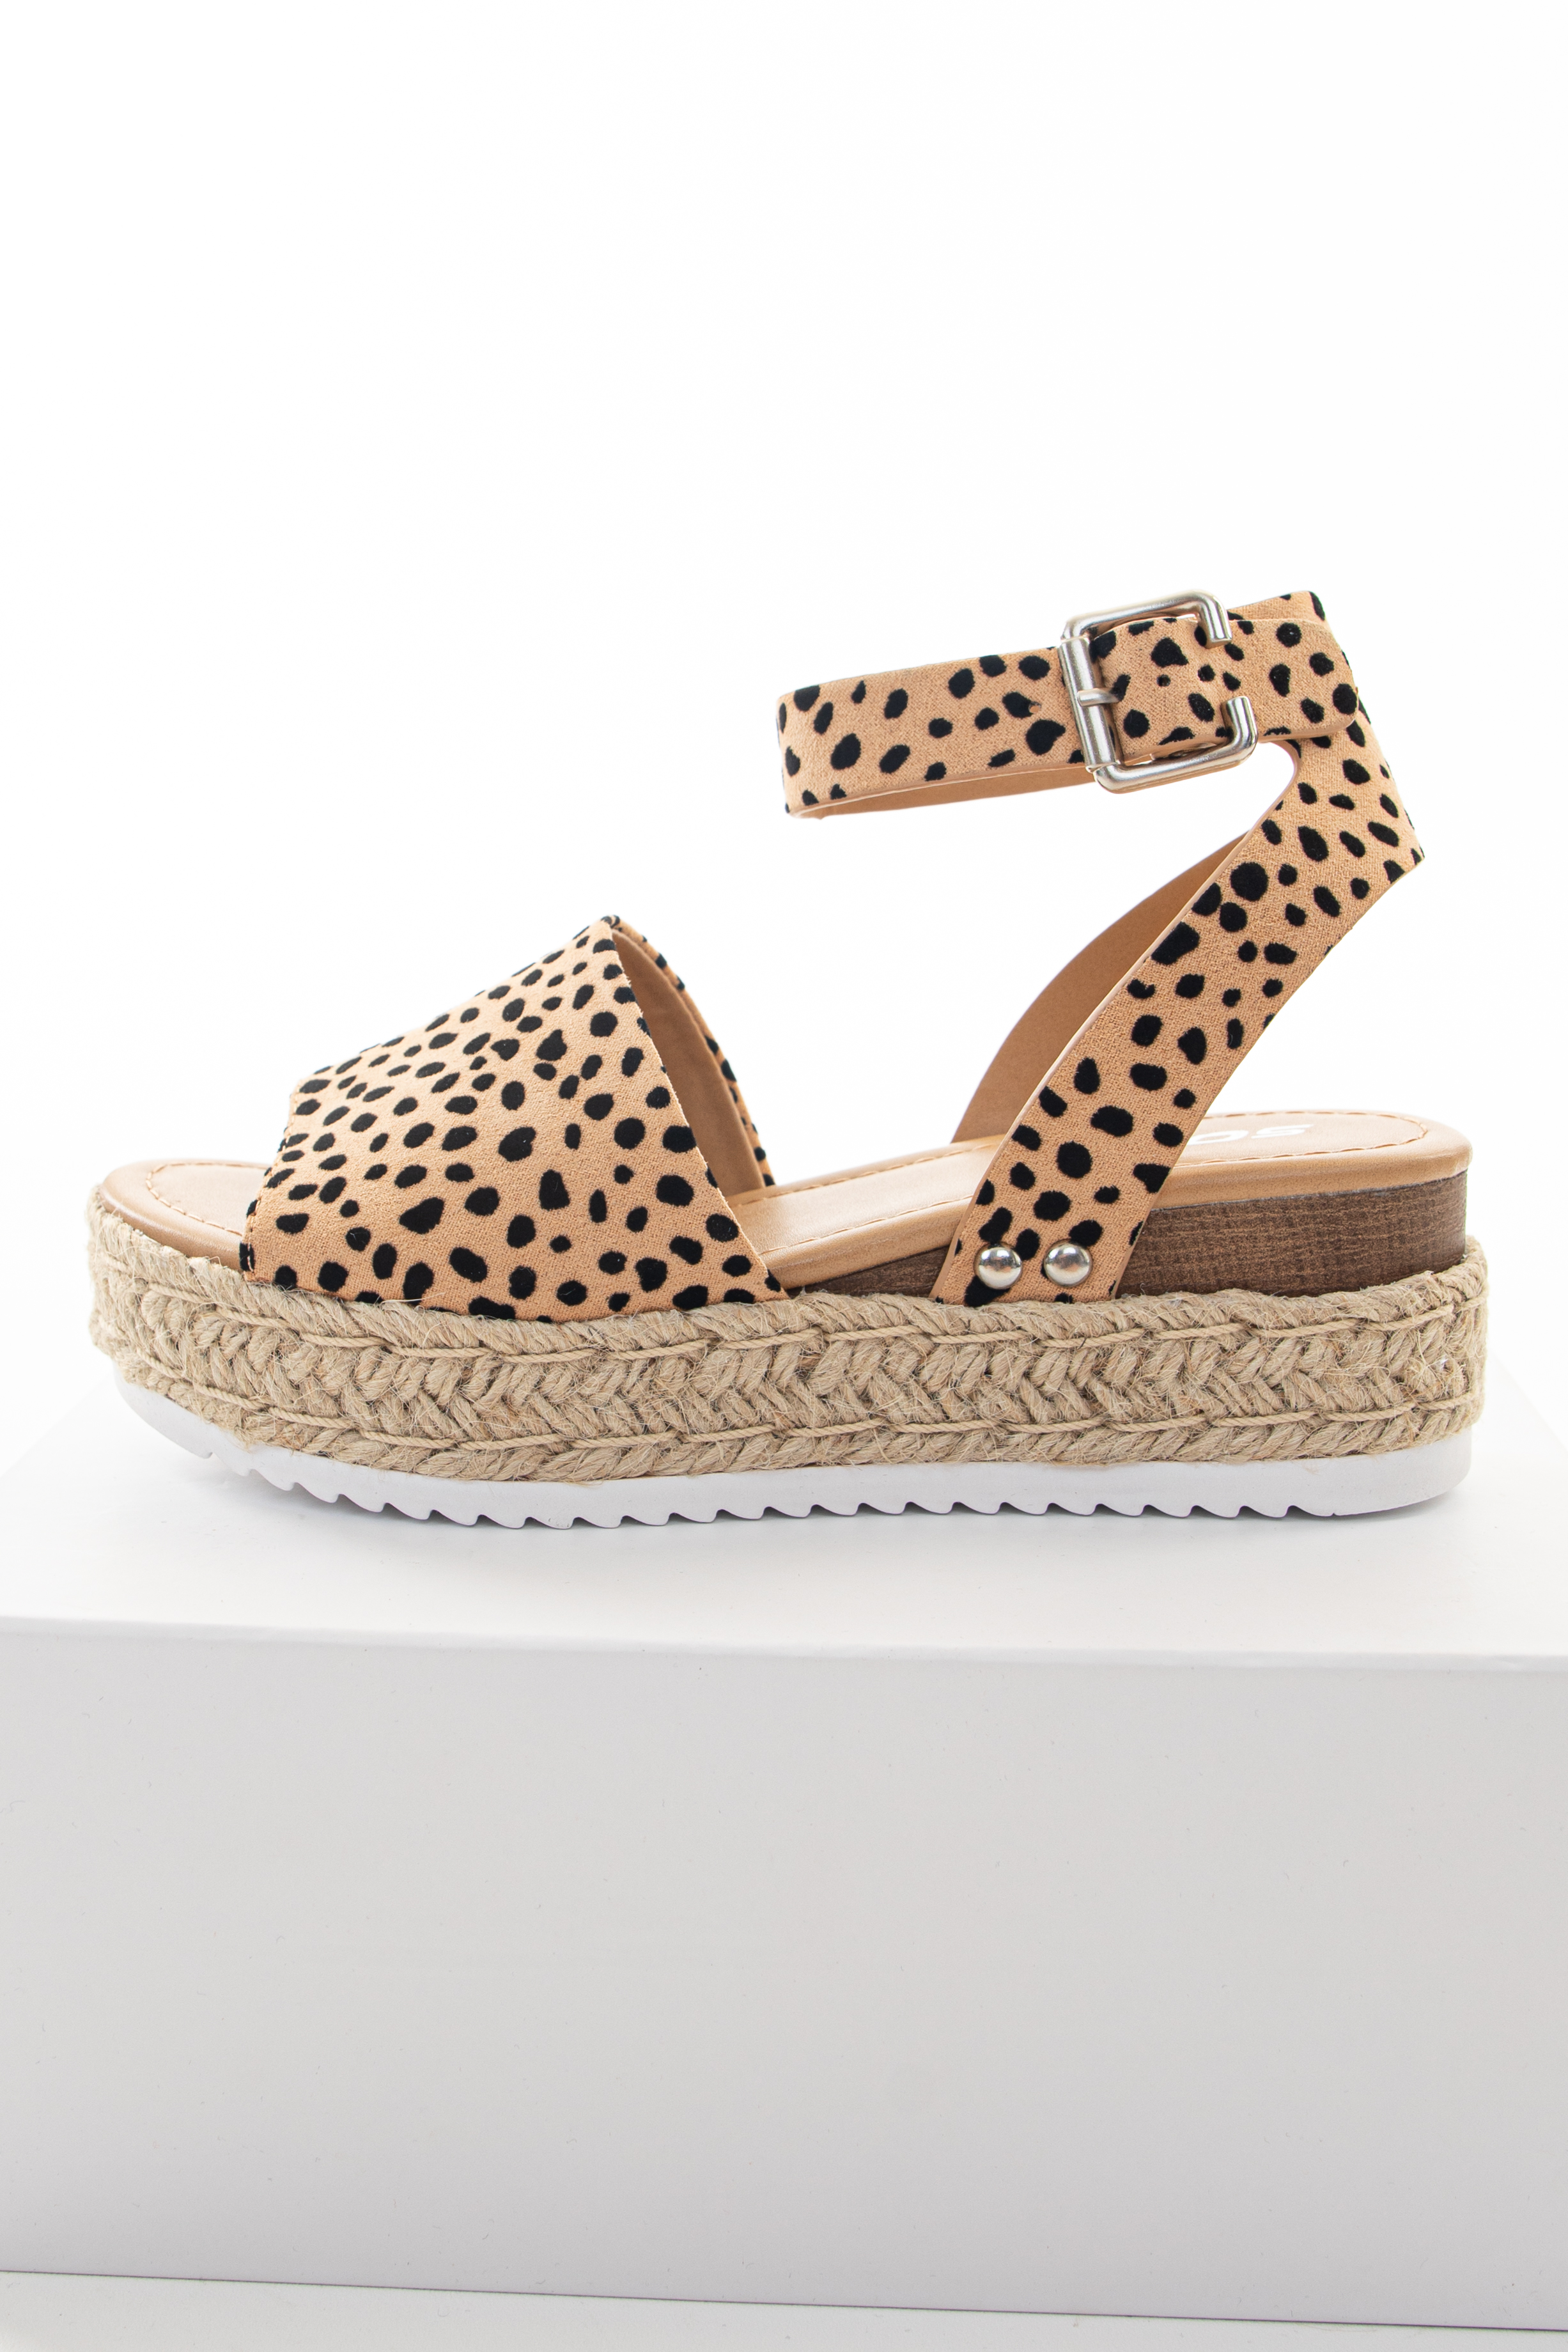 Nude Cheetah Espadrille Platform Sandals with Ankle Strap